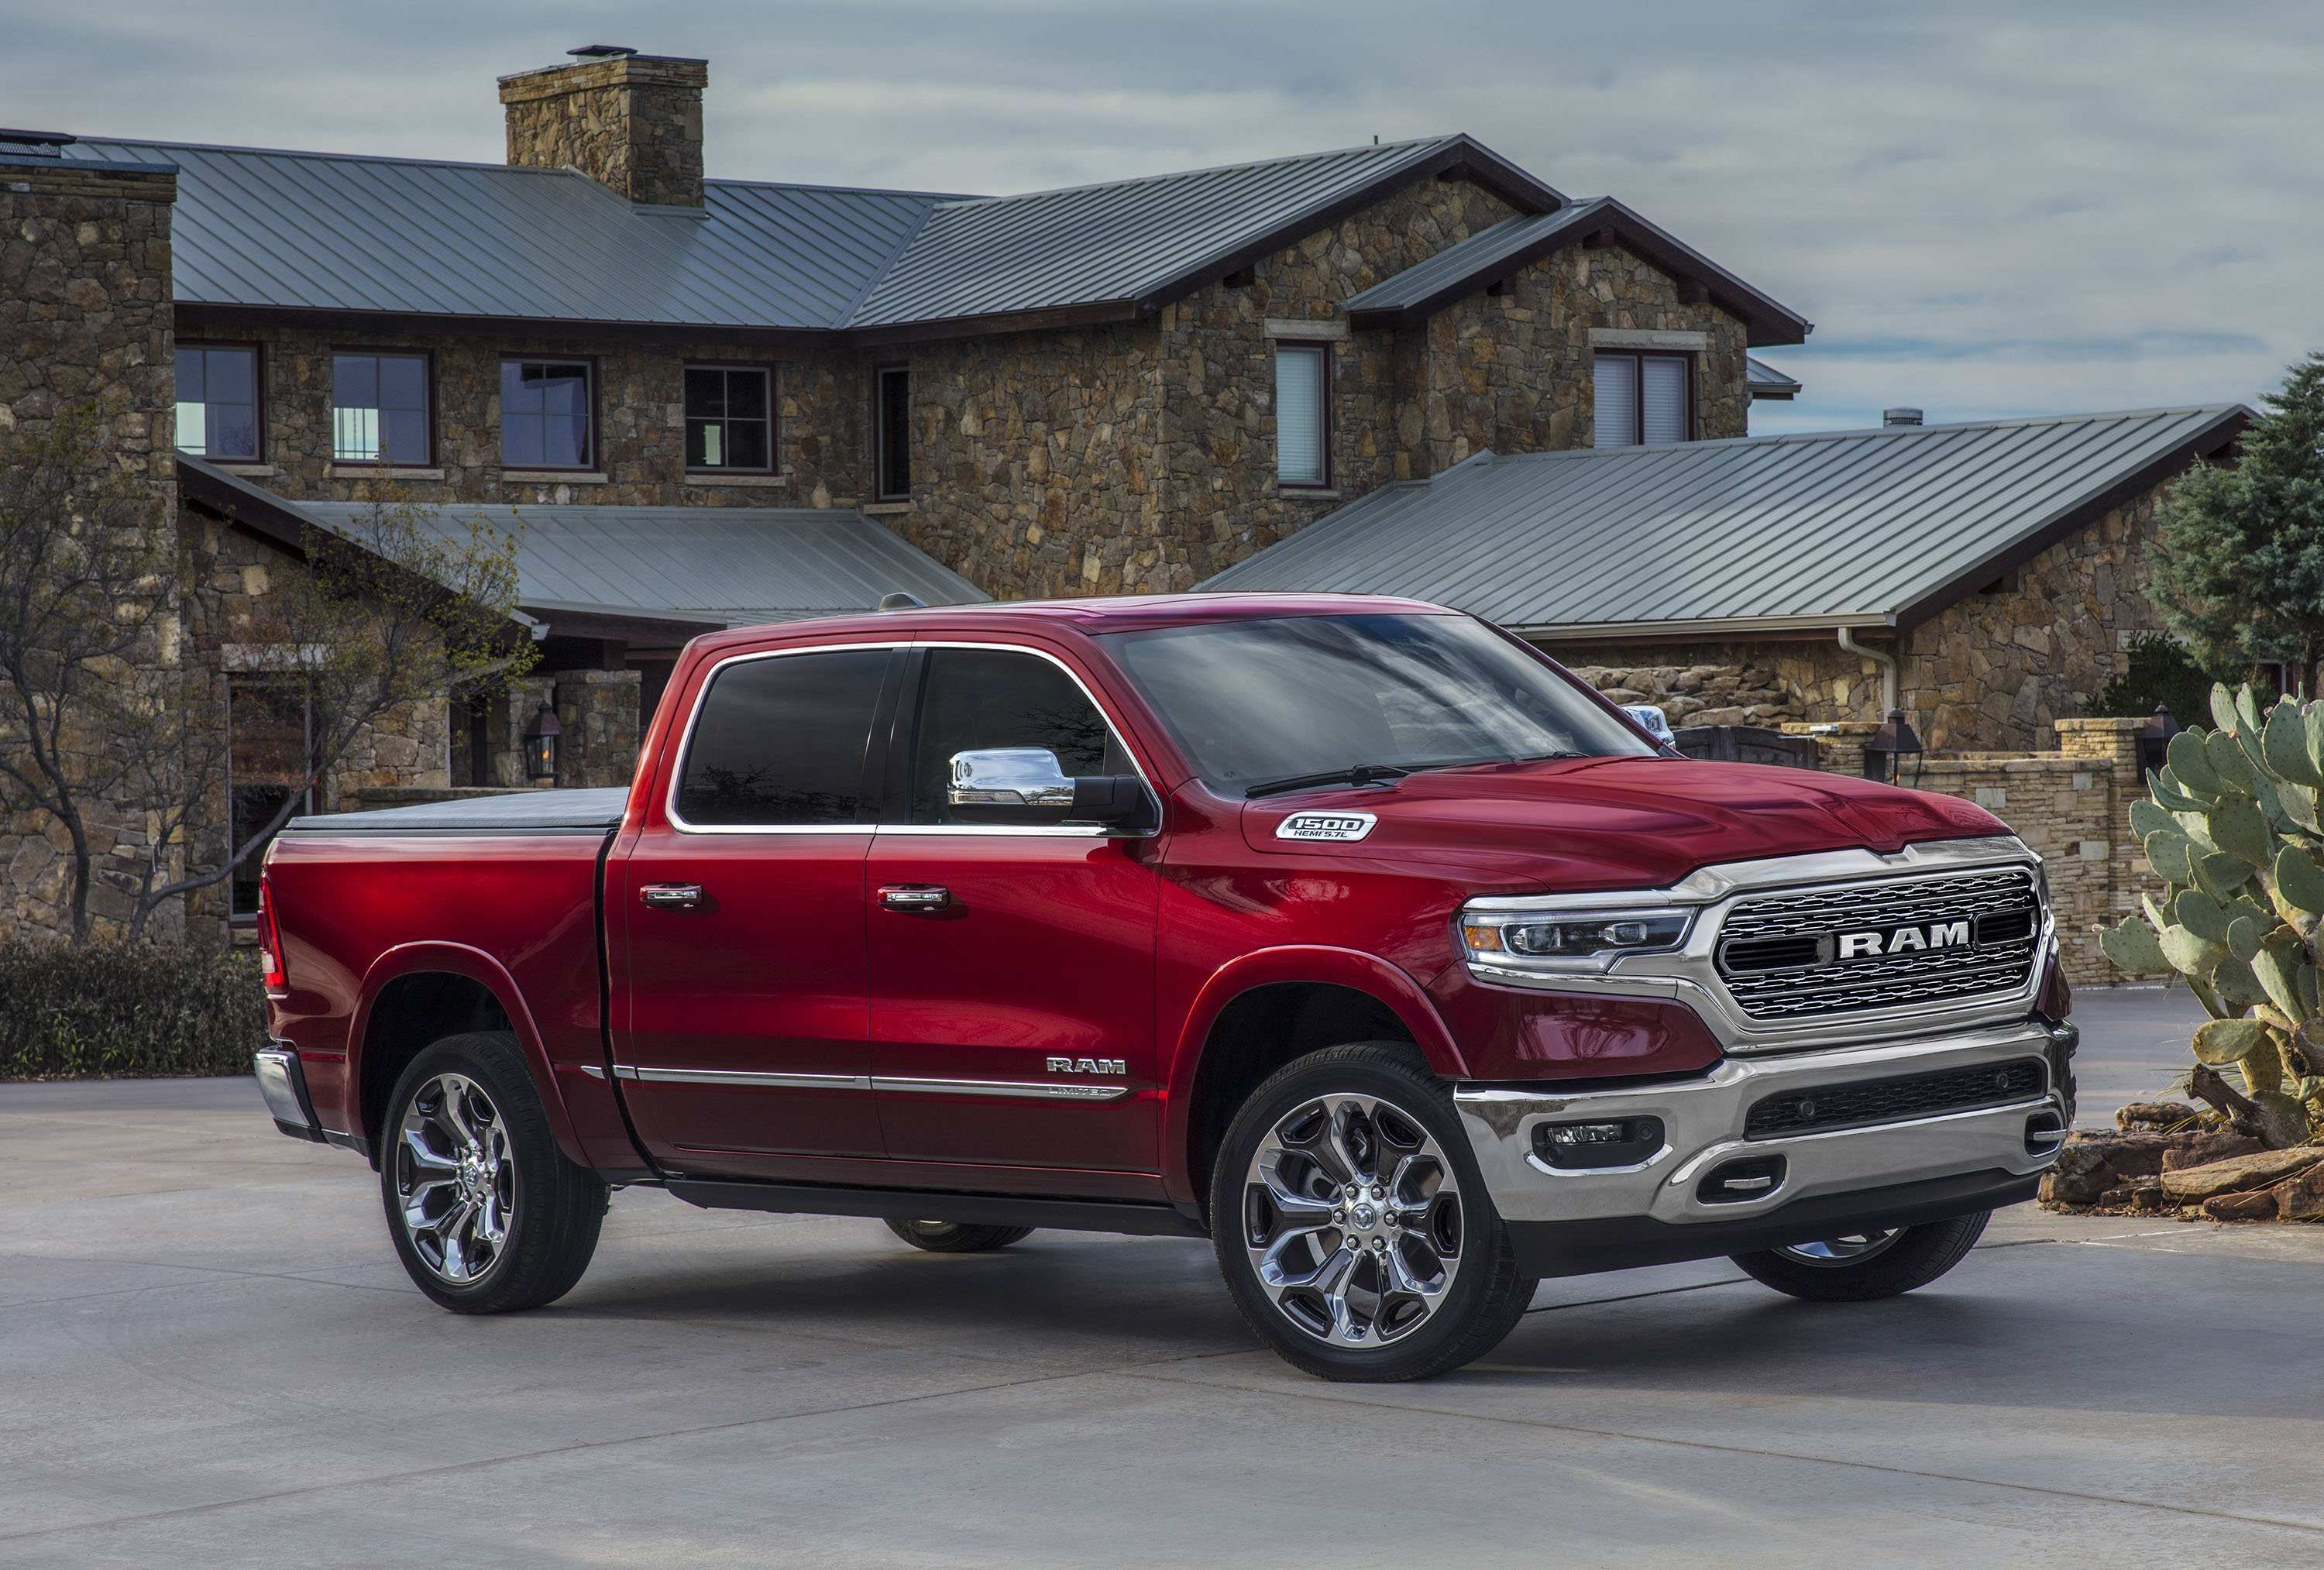 32 Concept of 2020 Dodge Ram Limited New Concept for 2020 Dodge Ram Limited